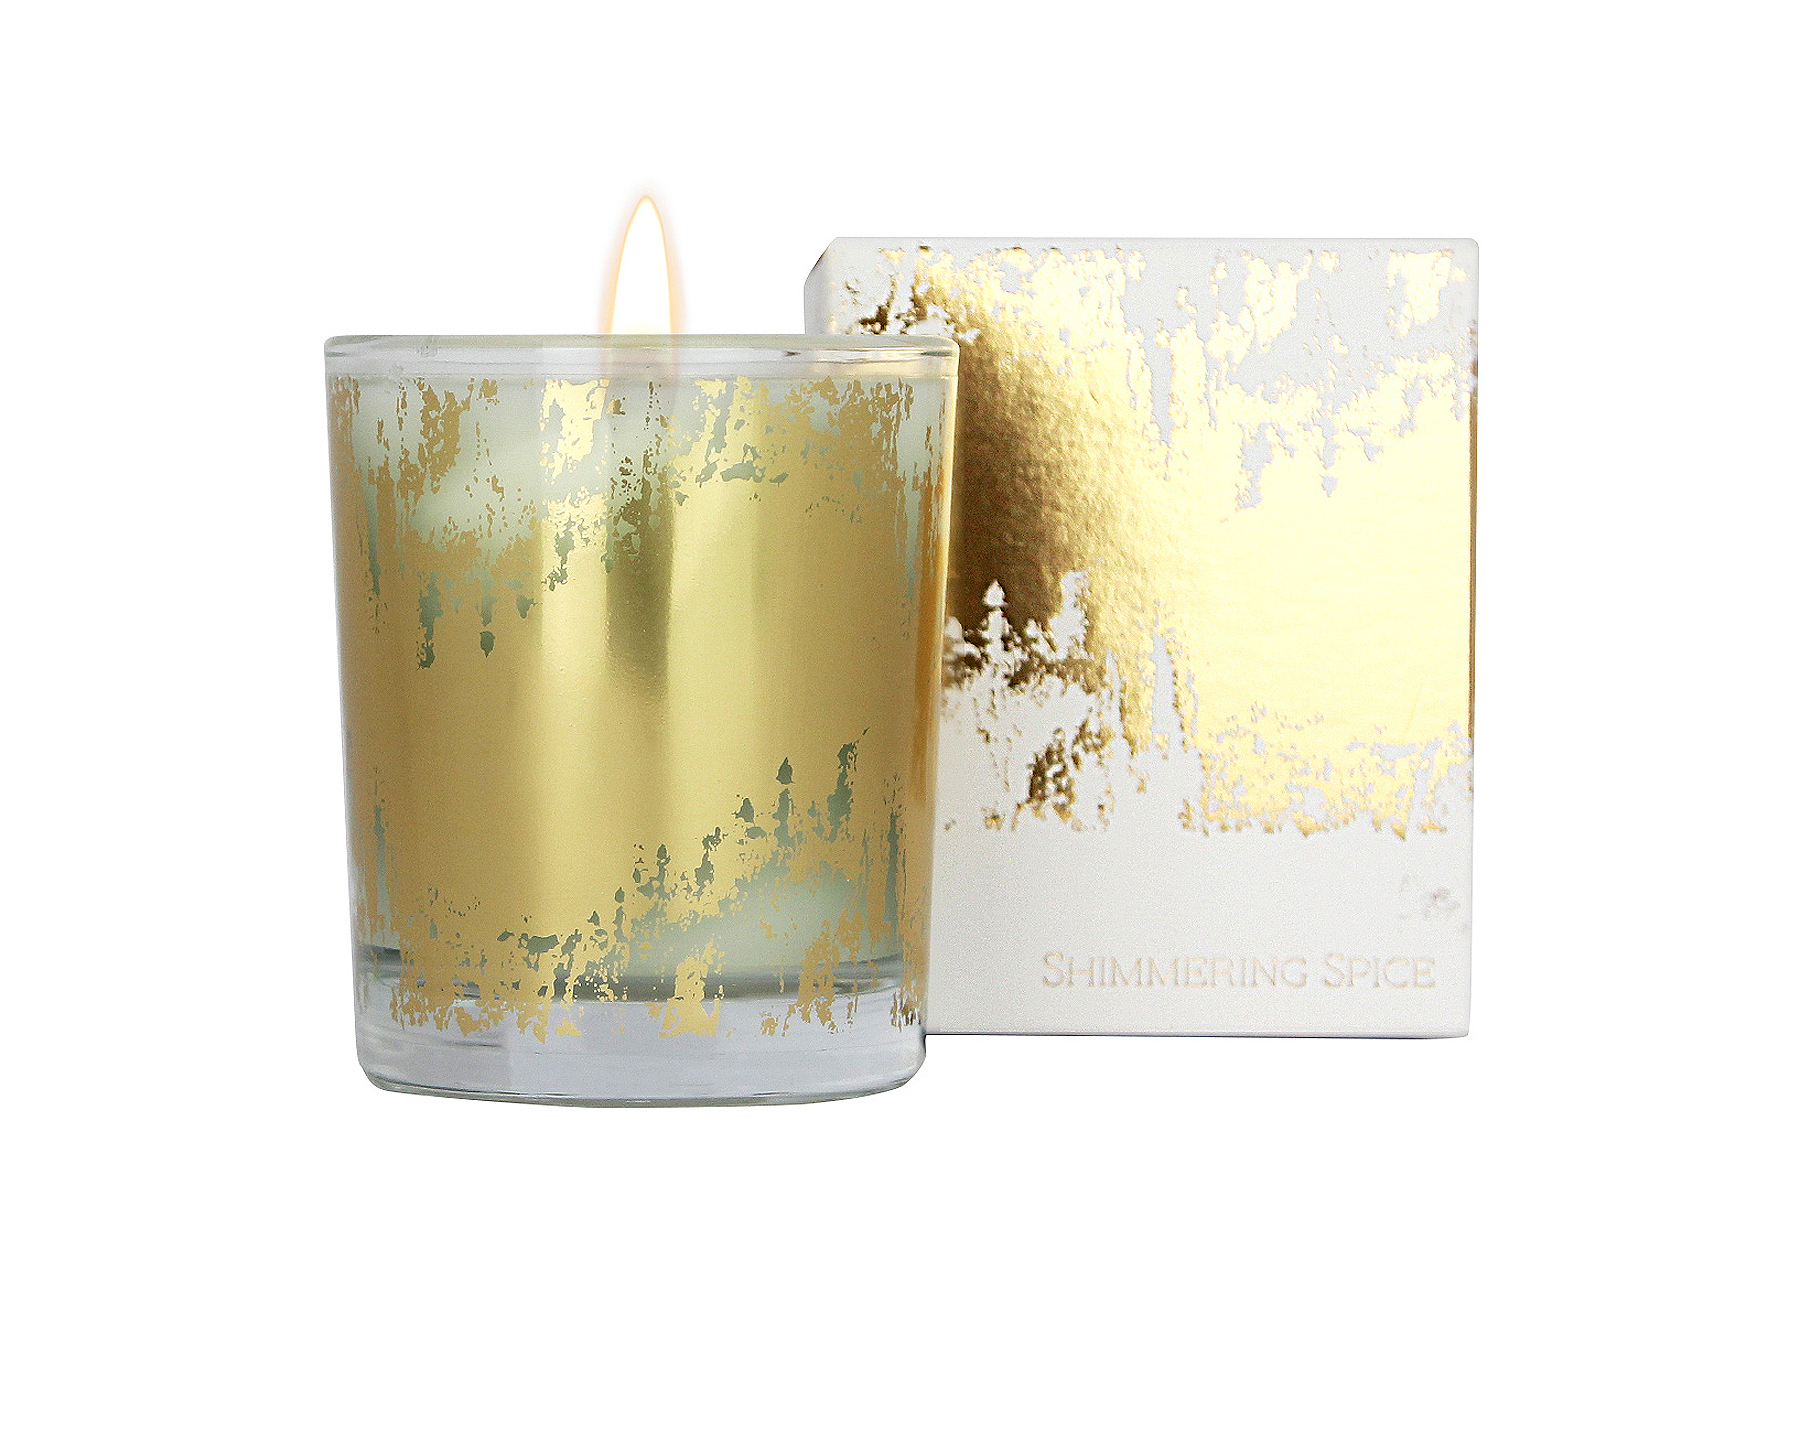 space-nk-shimmering-spice-candle